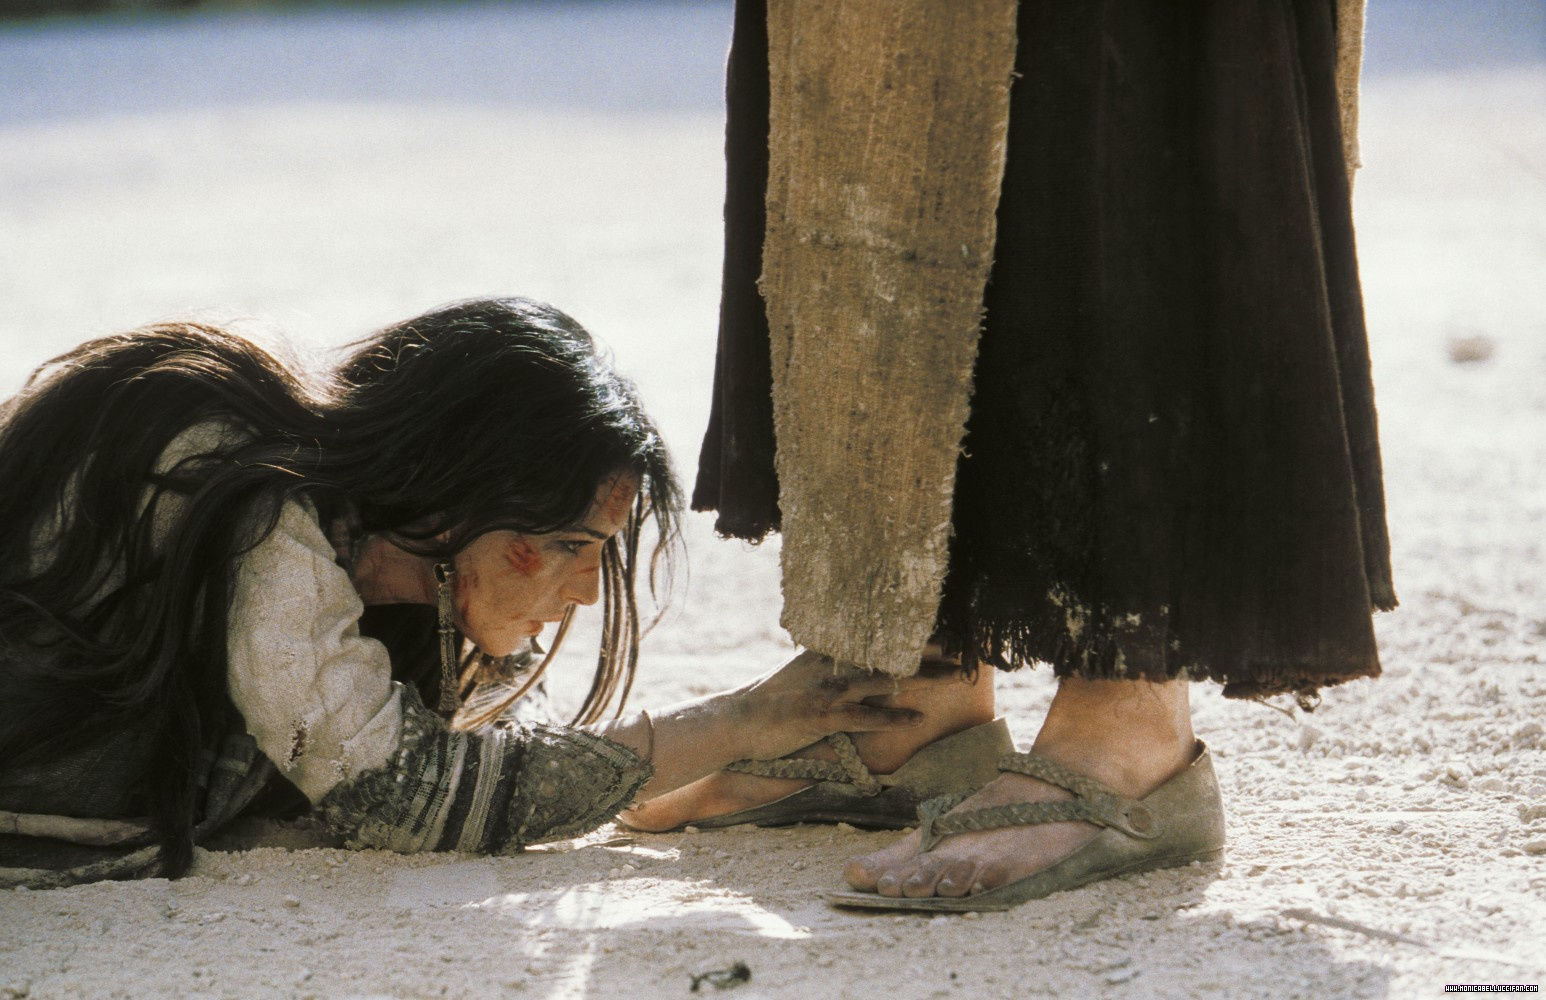 the adulterous woman This was a hard lesson plan to come up with i don't really think preschoolers need to know about stoning well, at least not yet the adulterous woman was brought to jesus by the pharisees.